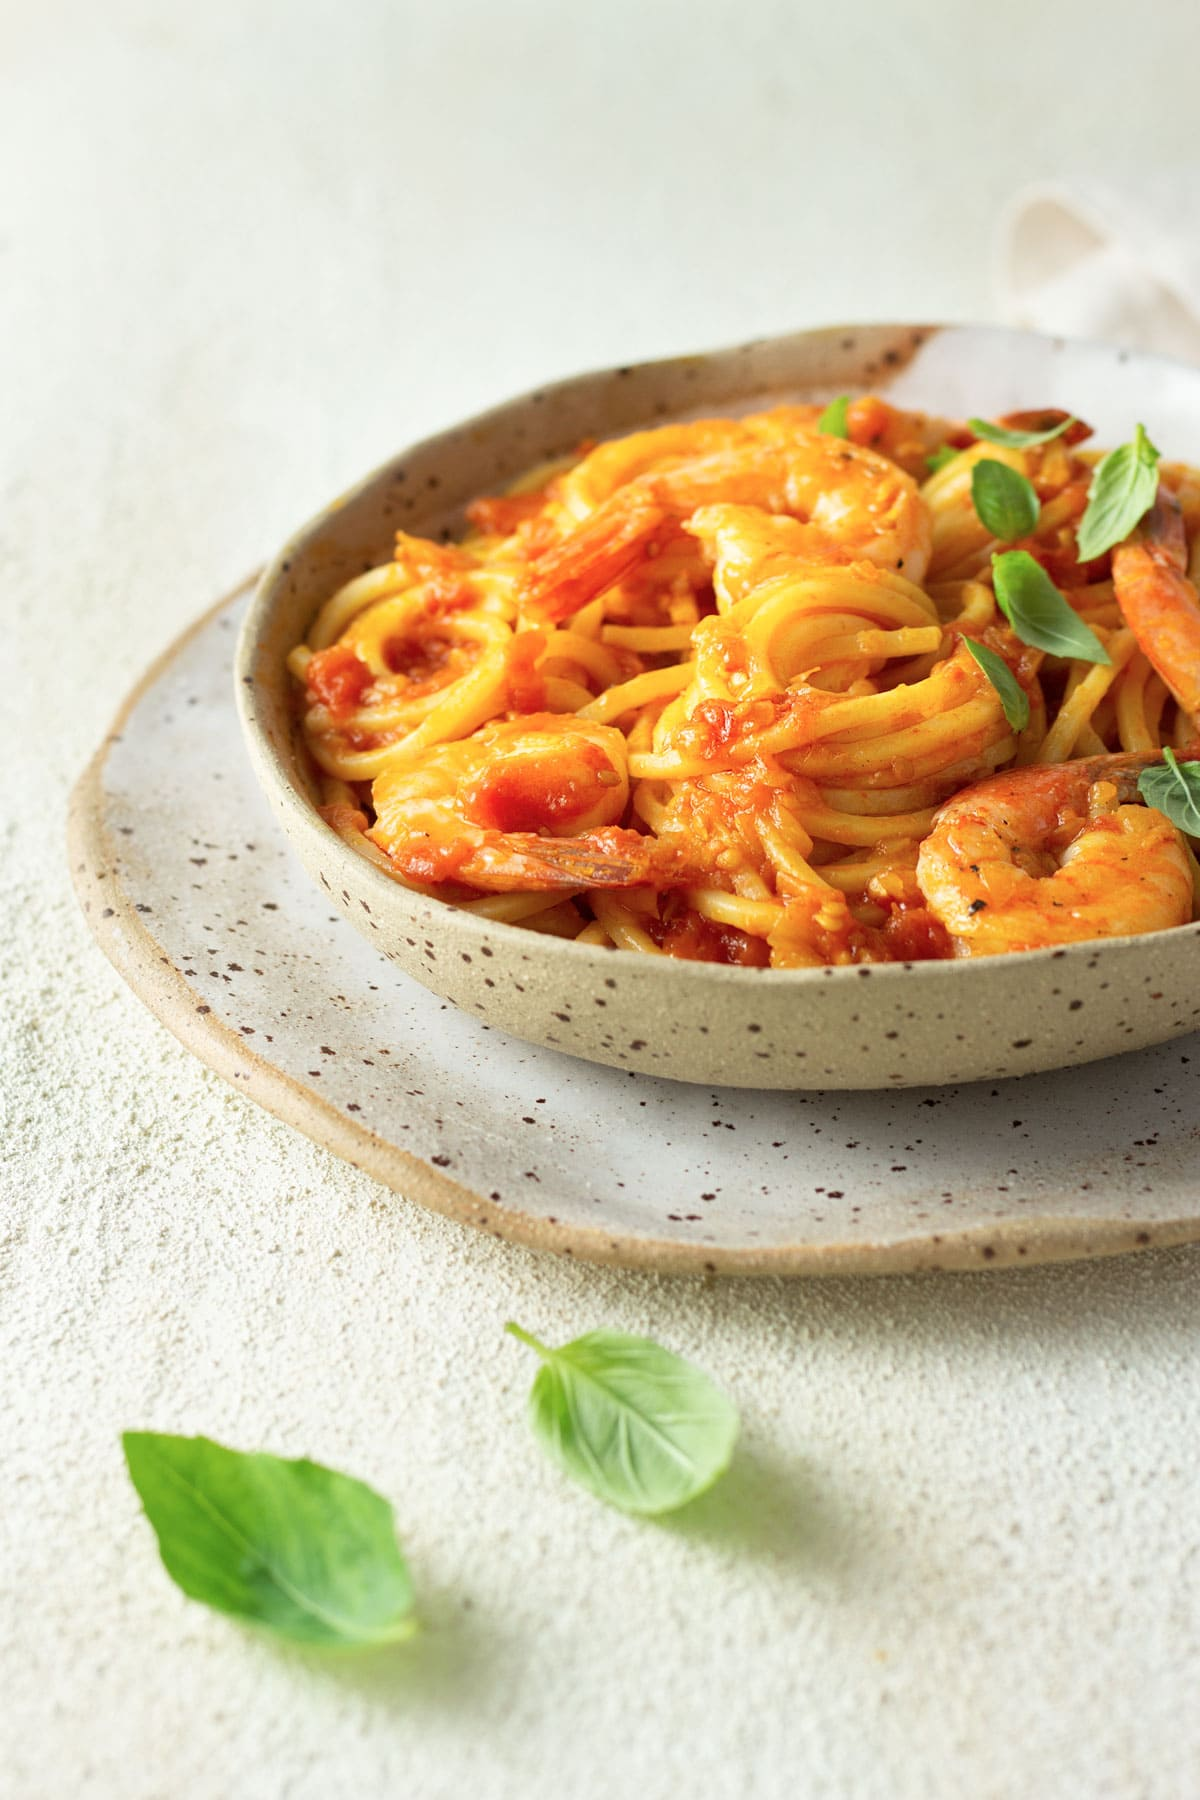 Slightly angled view of a bowl of spaghetti and shrimp with fresh tomato sauce.